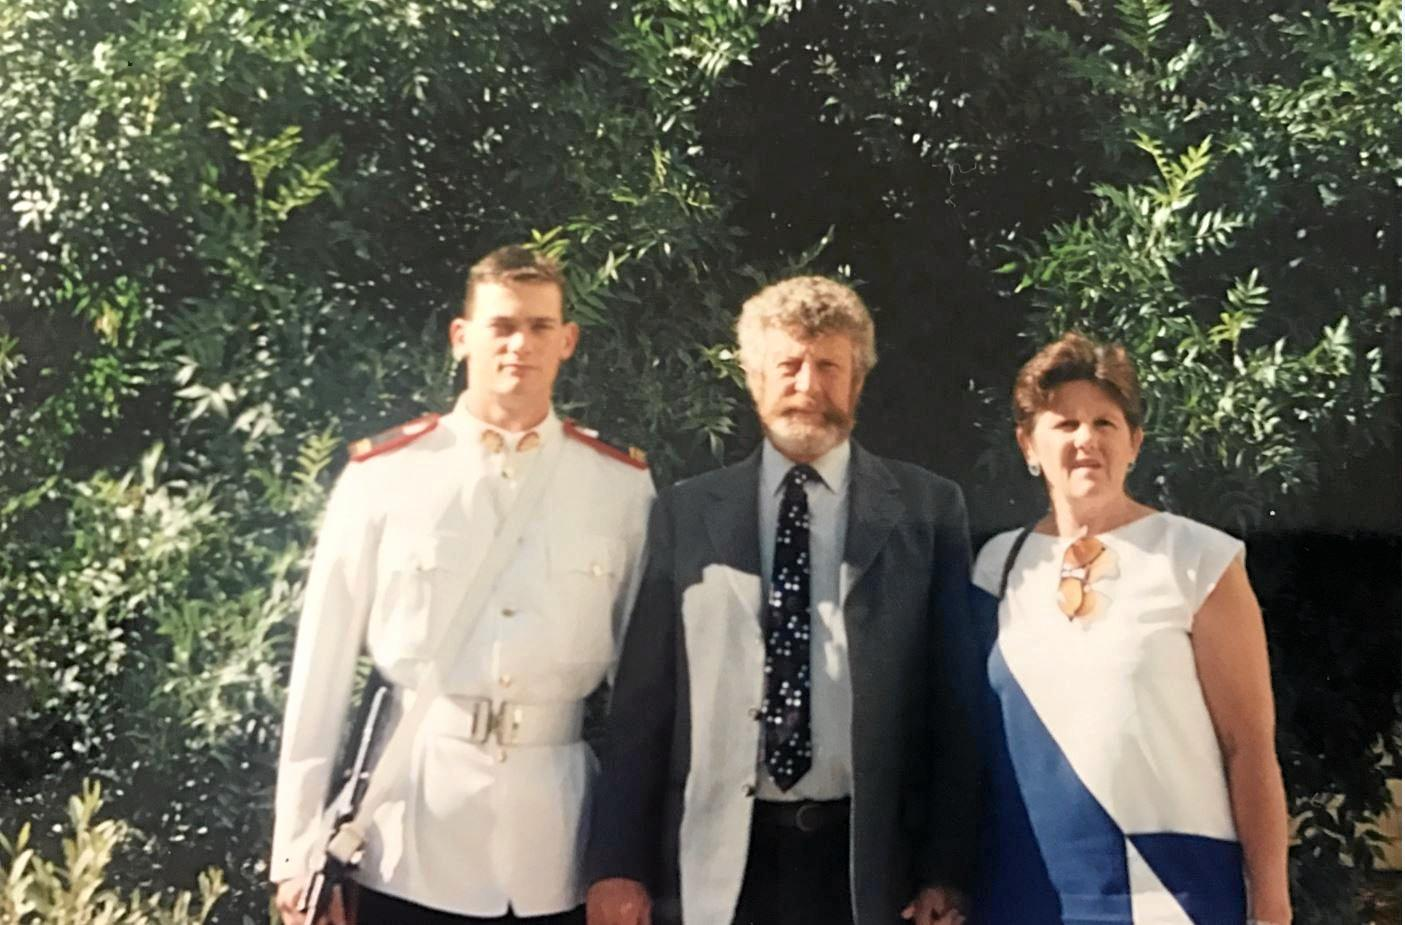 Sean Sargent with his father Tom and stepmother Ruth.